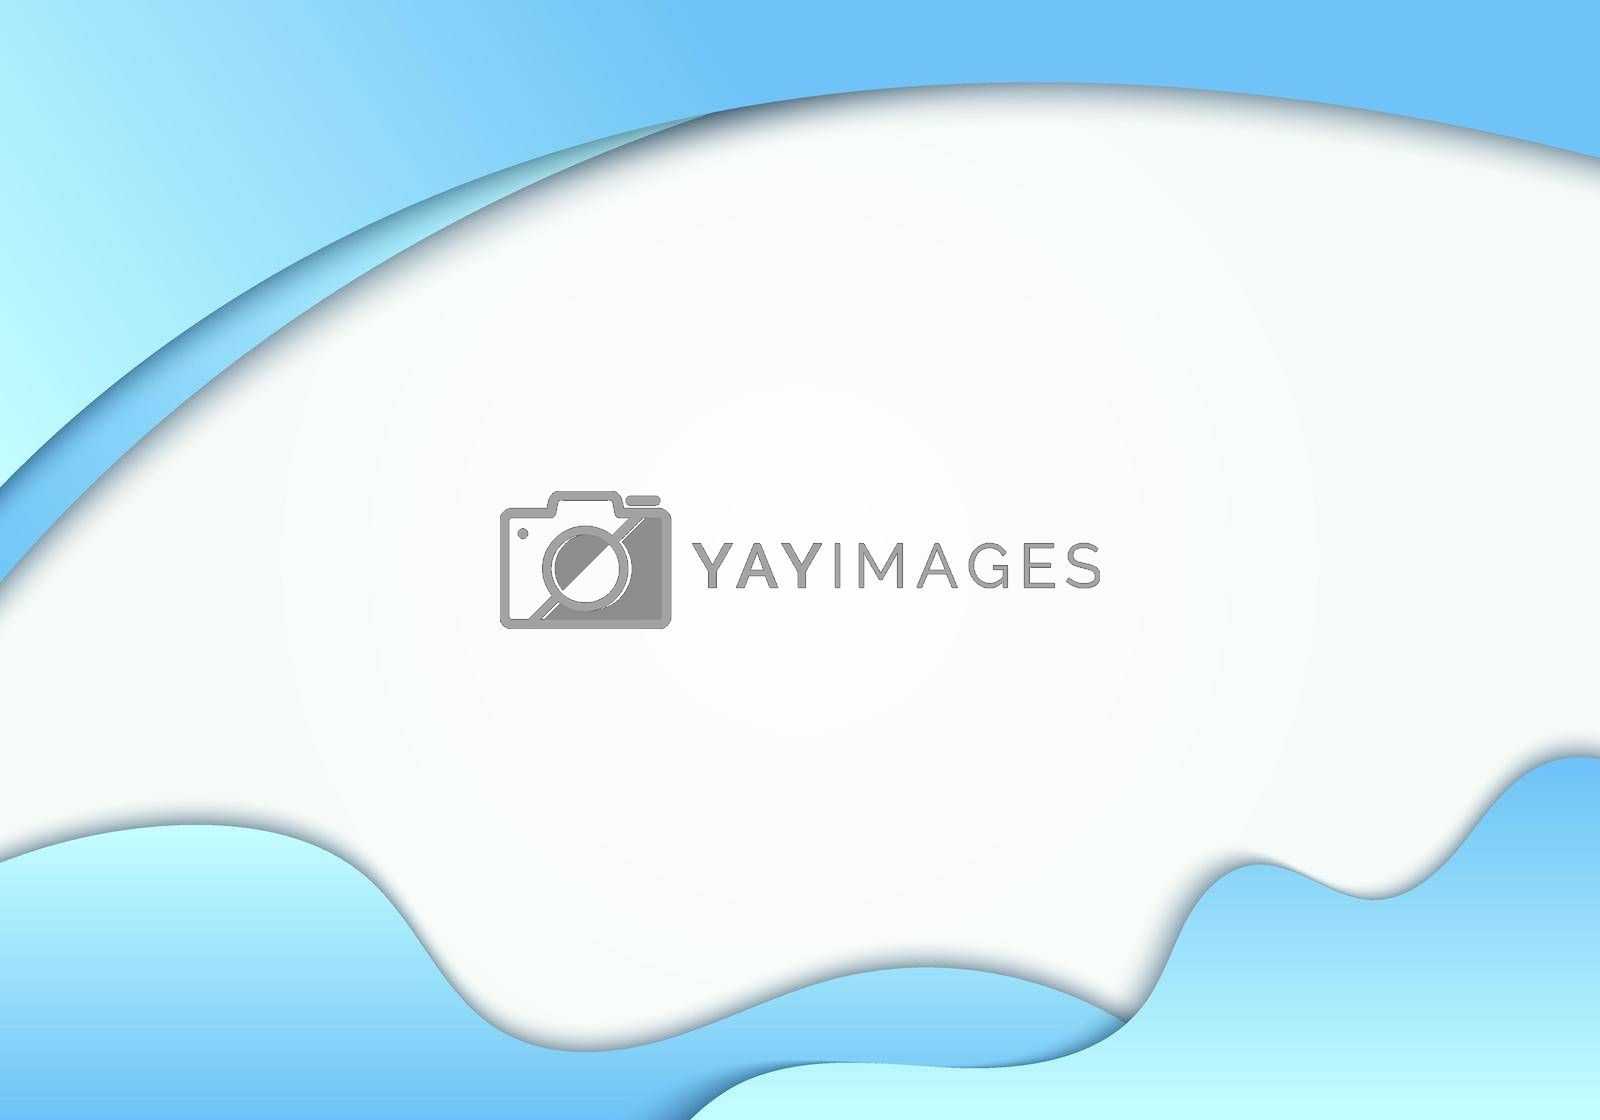 Abstract blue fluid shape with curved header on white background with space for your text. Vector illustration